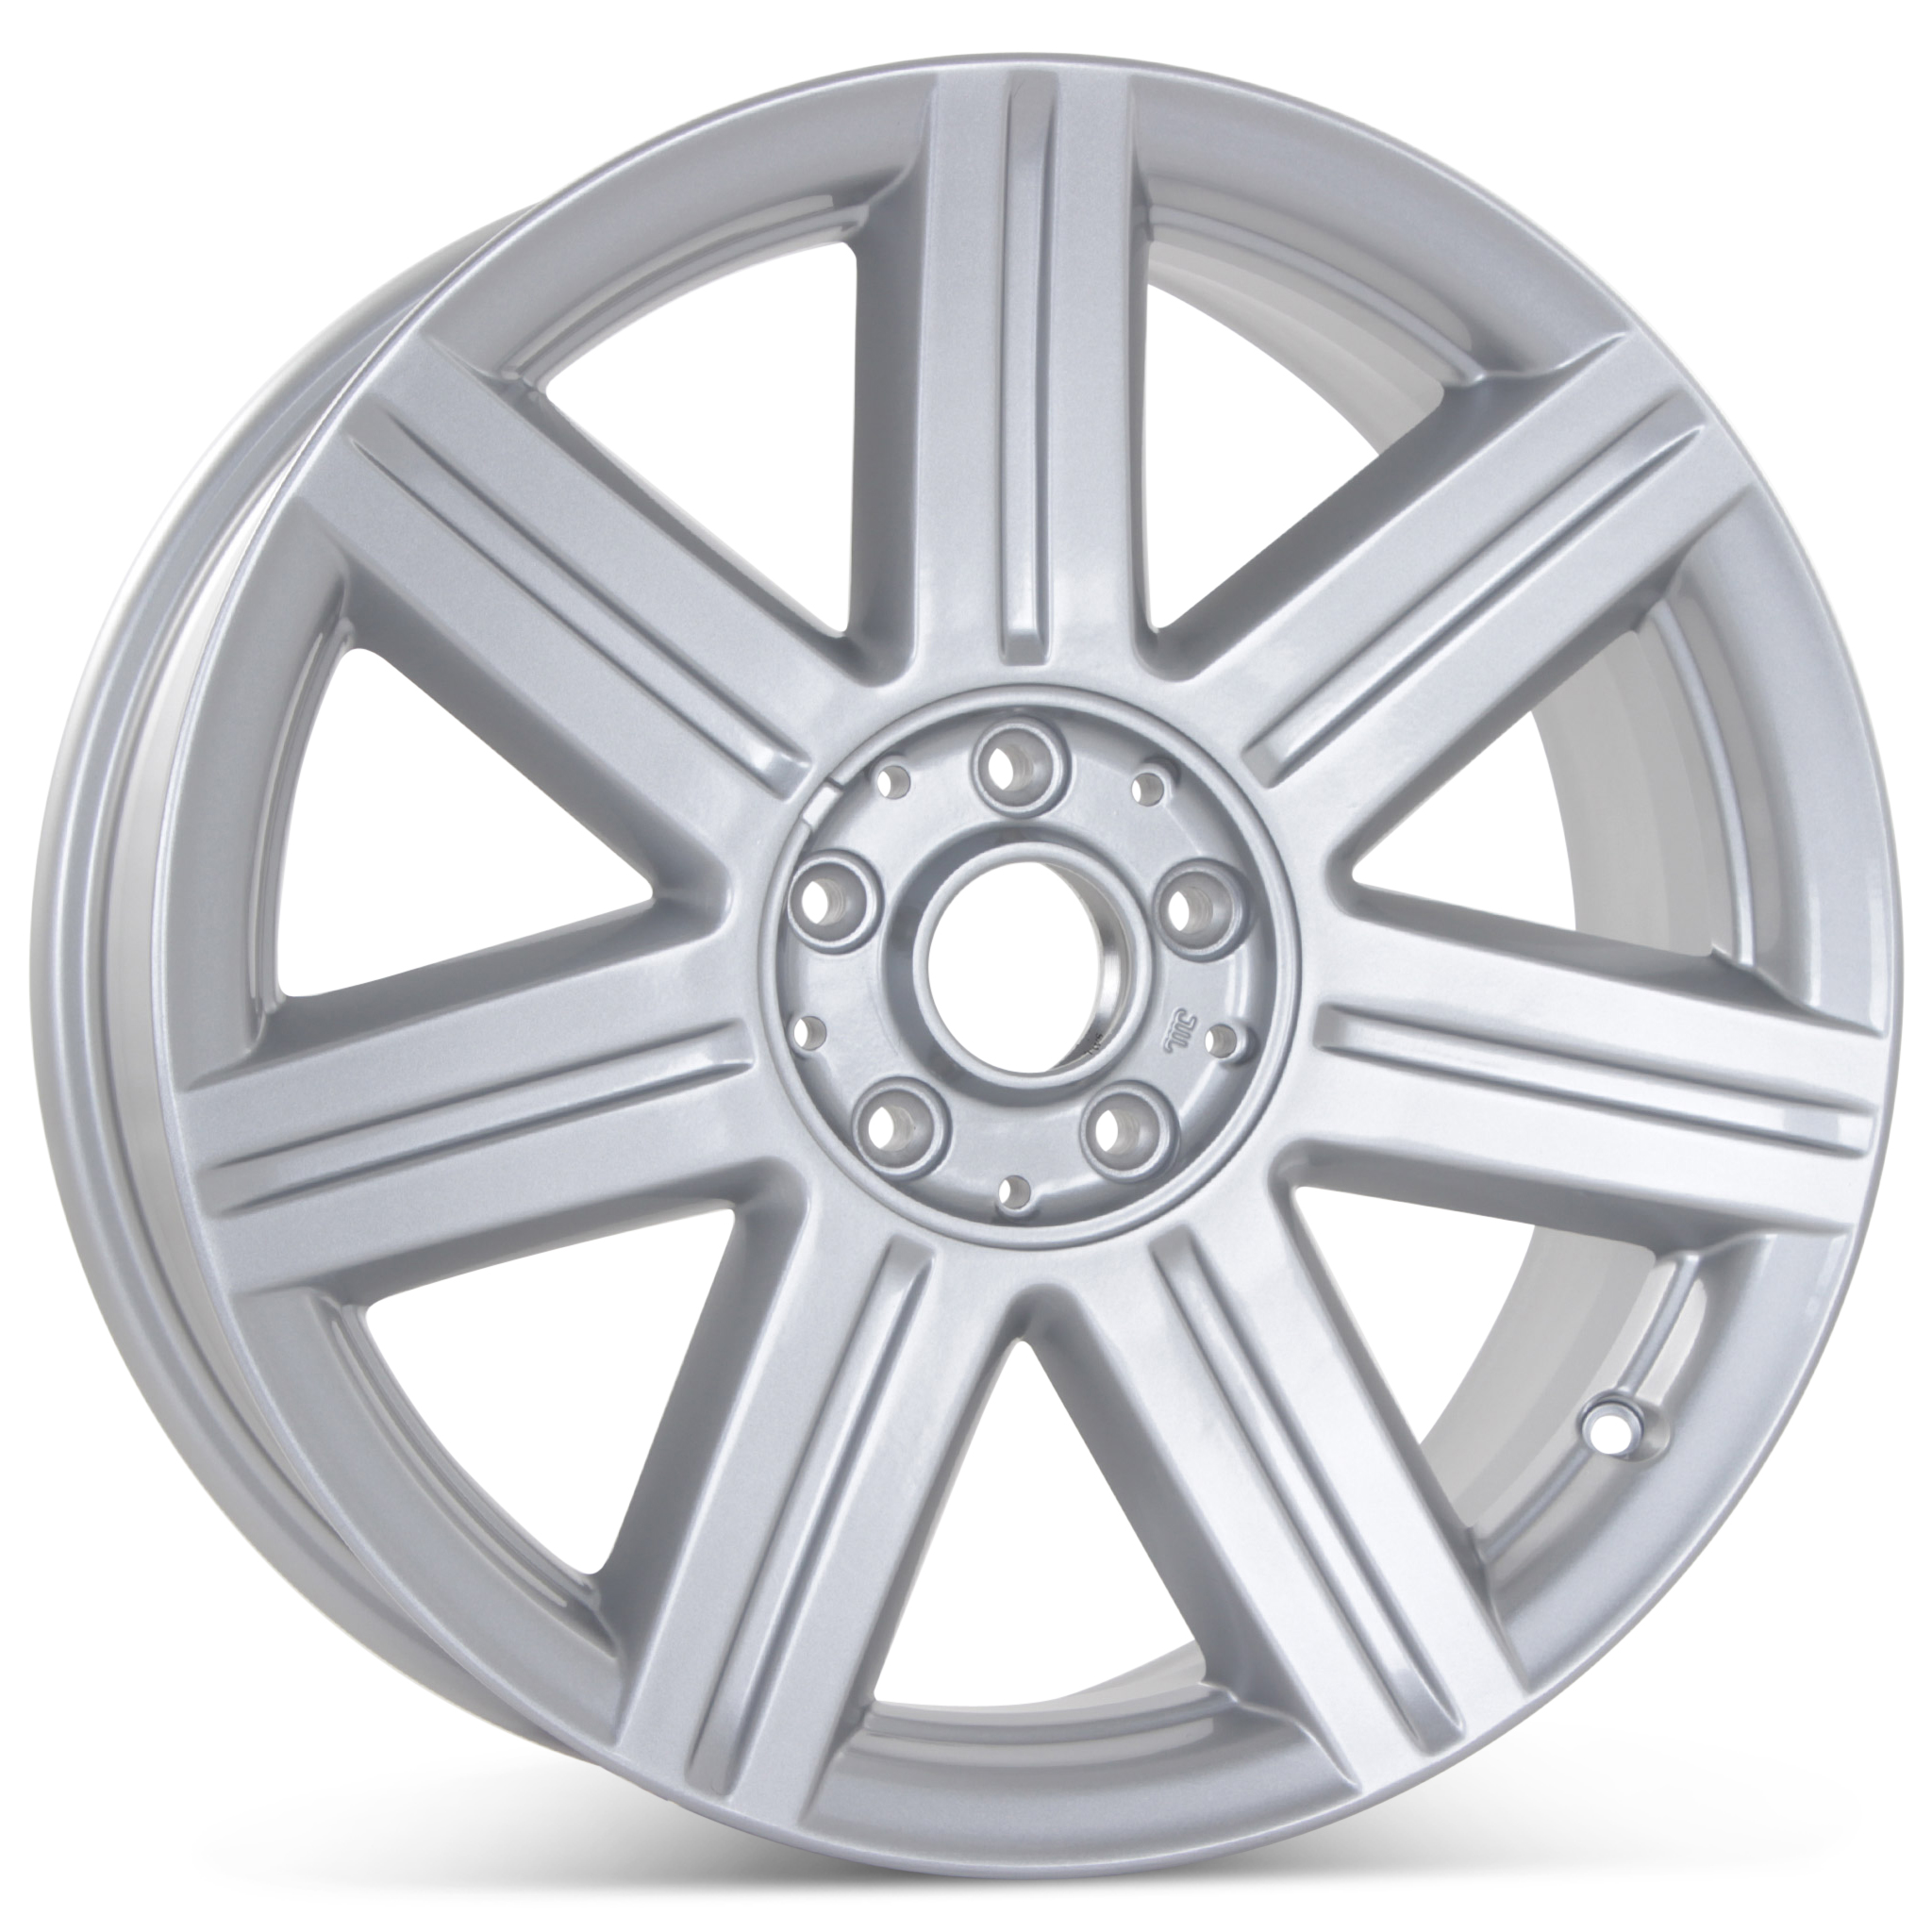 "New 18"" Alloy Wheel For Chrysler Crossfire 2004 2005 2006"